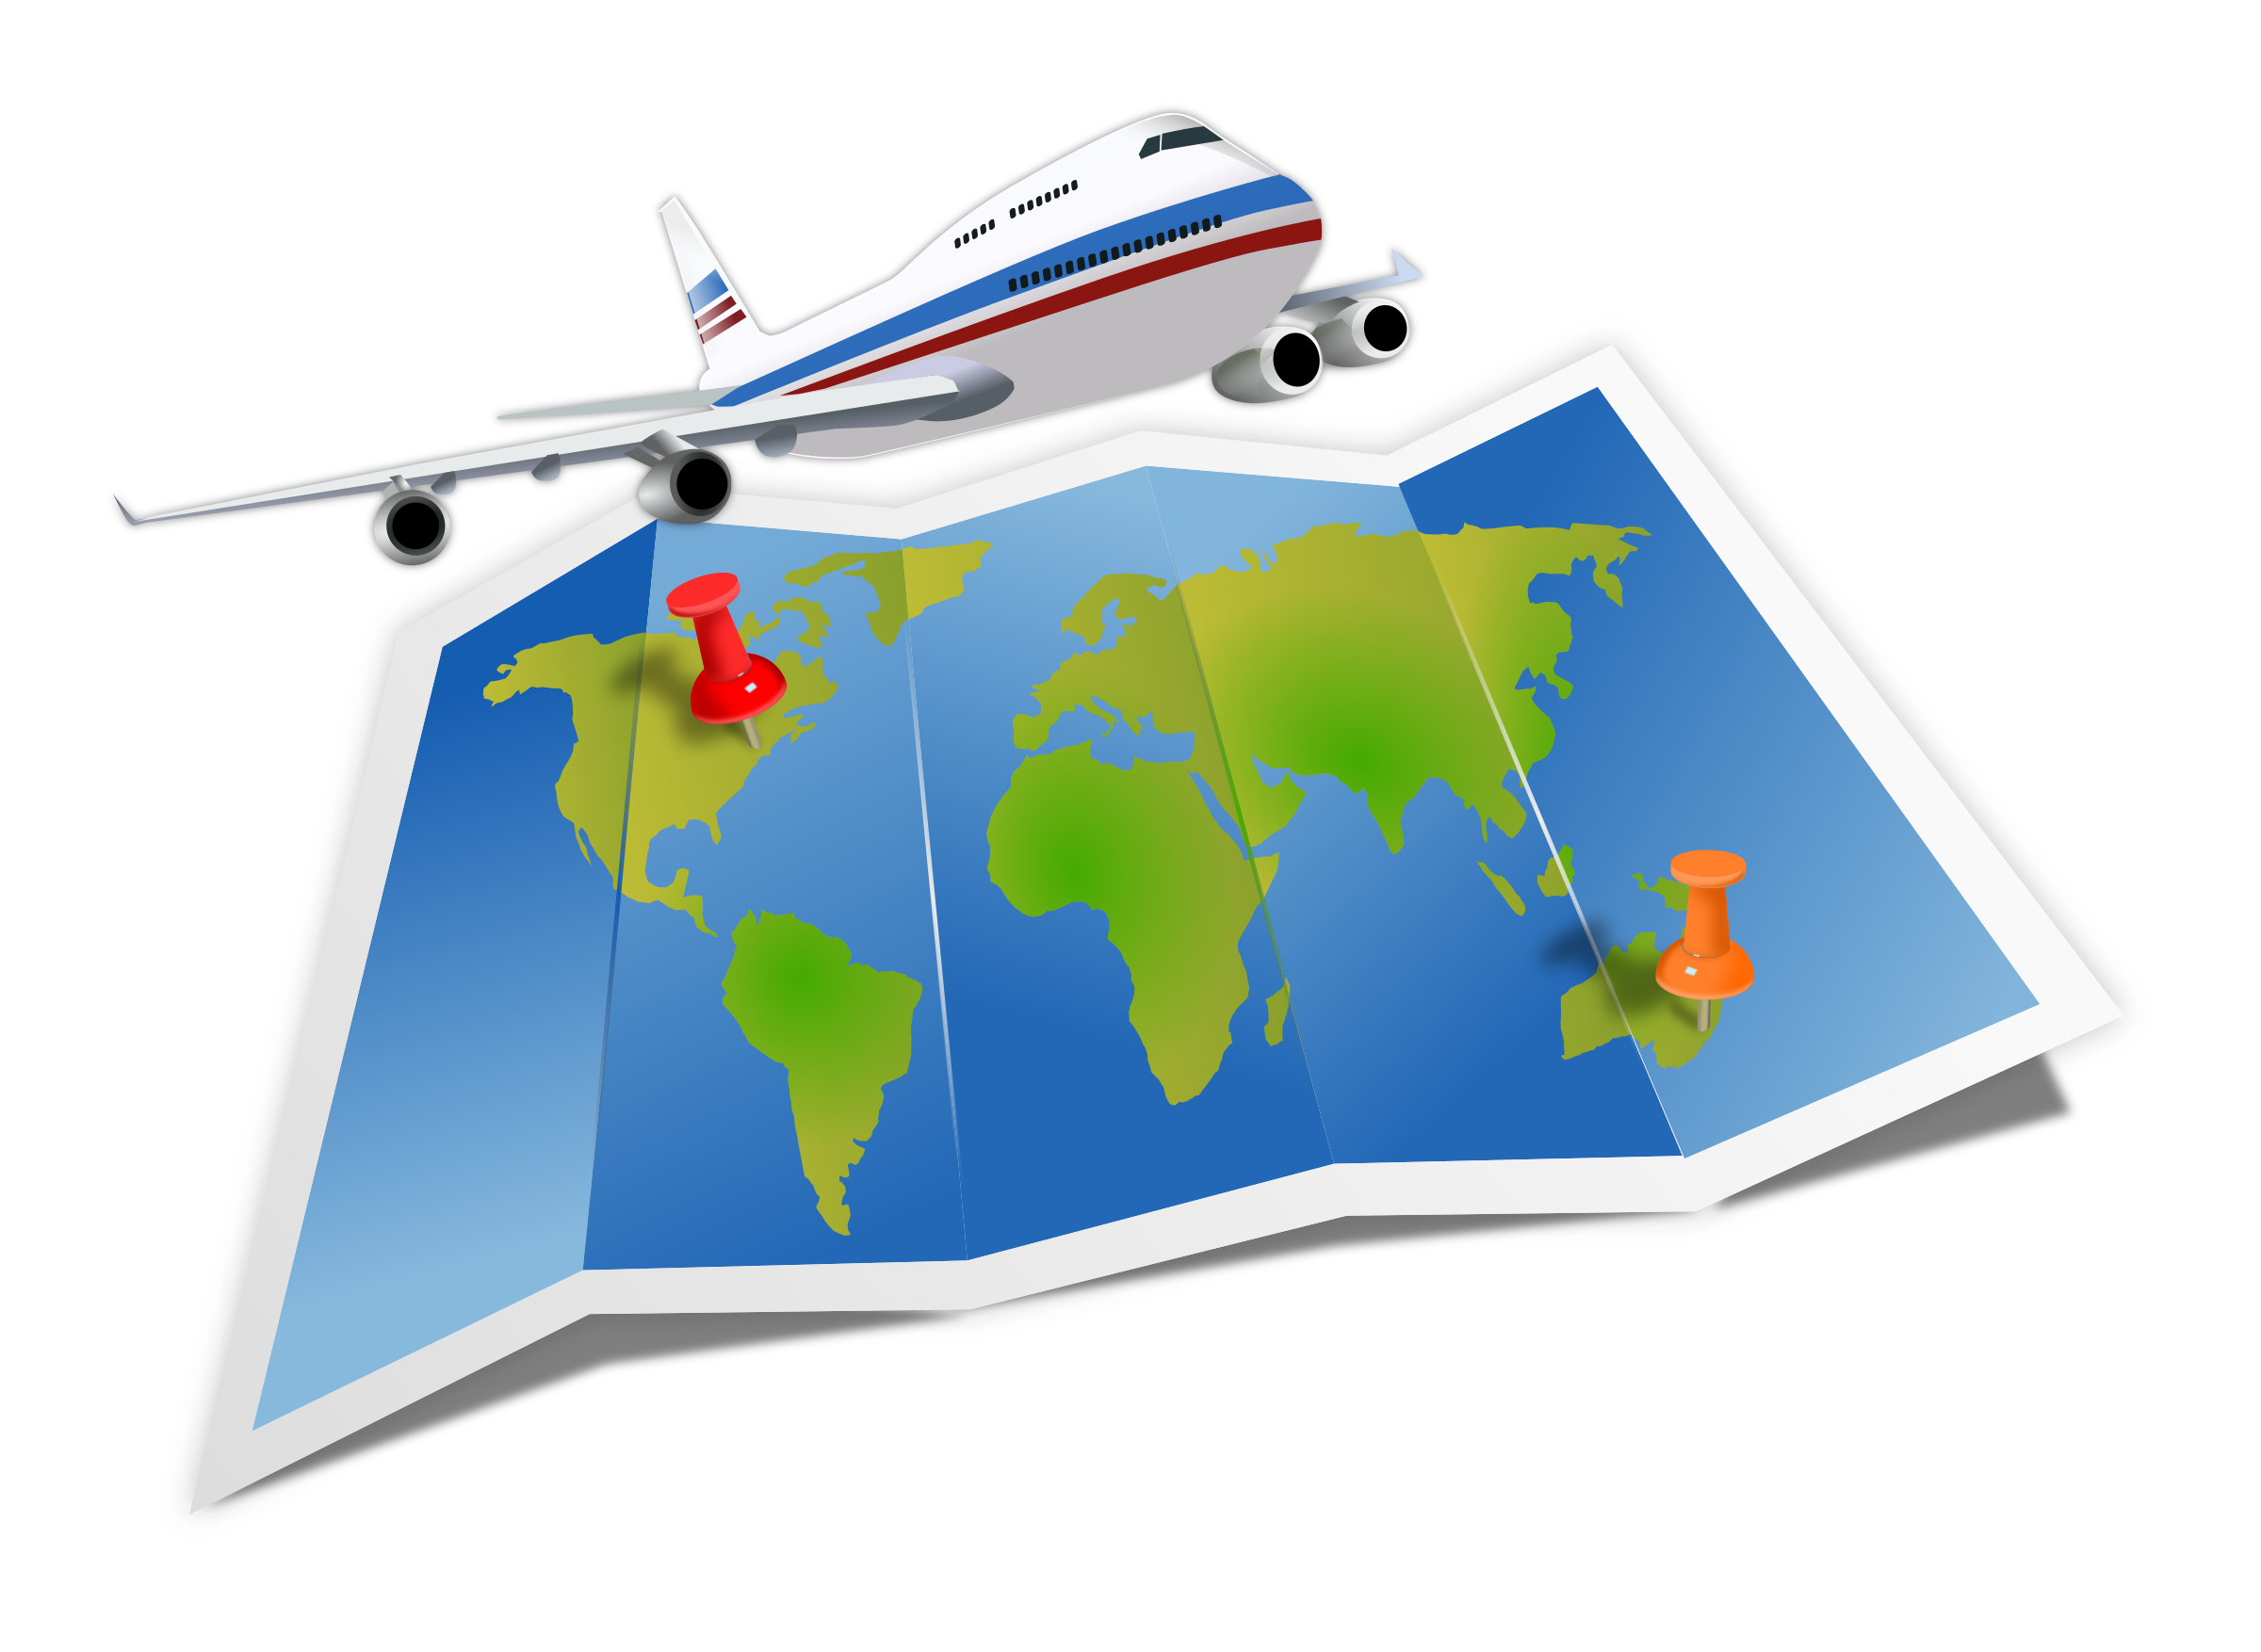 download Going to clipart vacation. Travel map big image